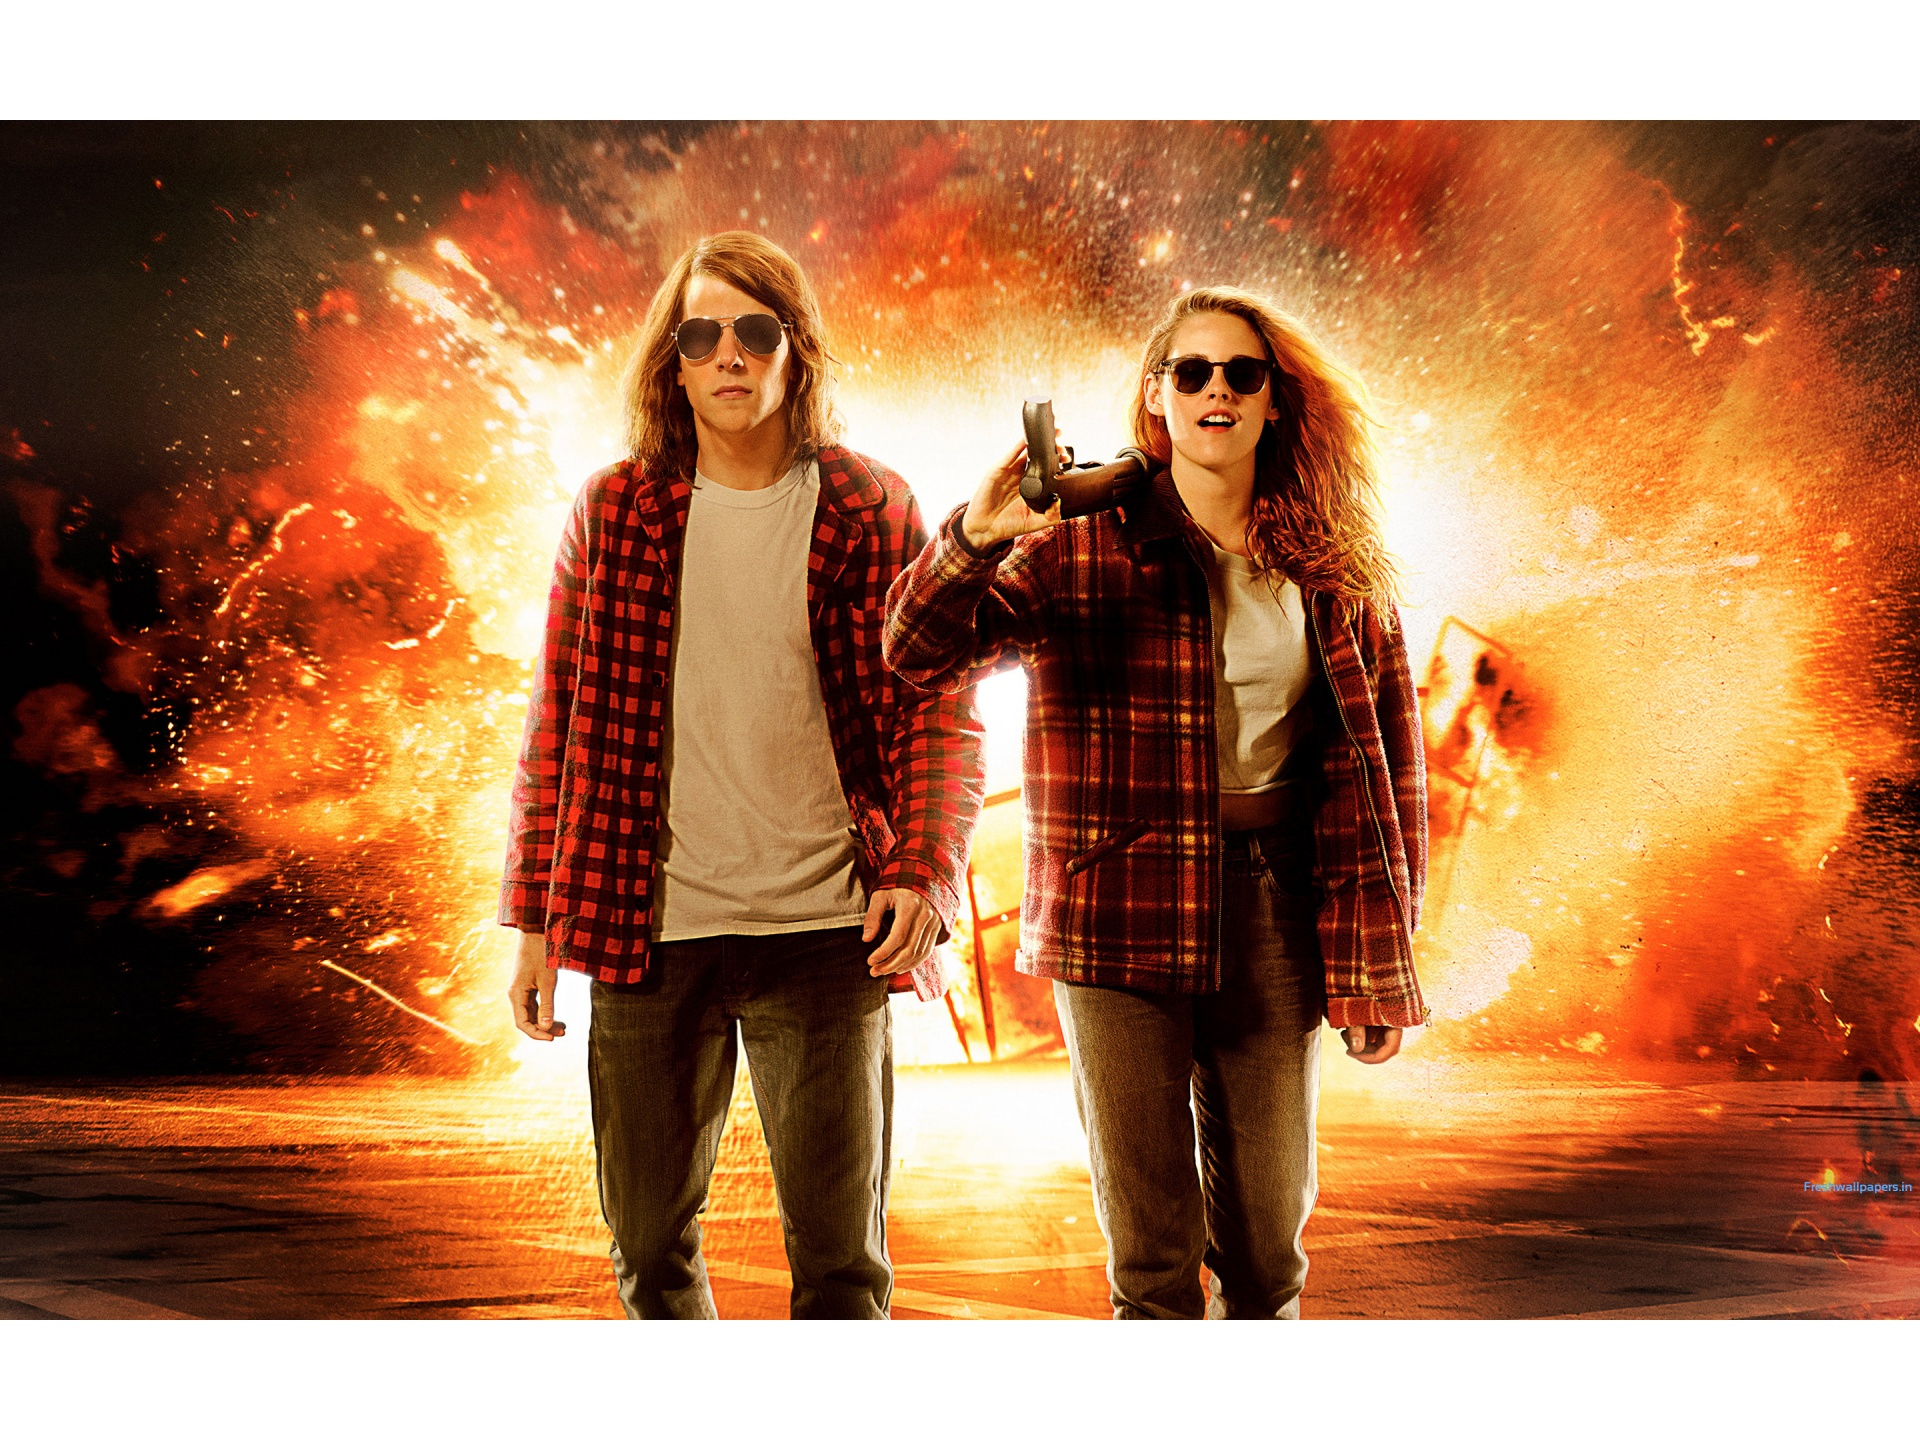 American Ultra Movie wallpapers 1920x1440